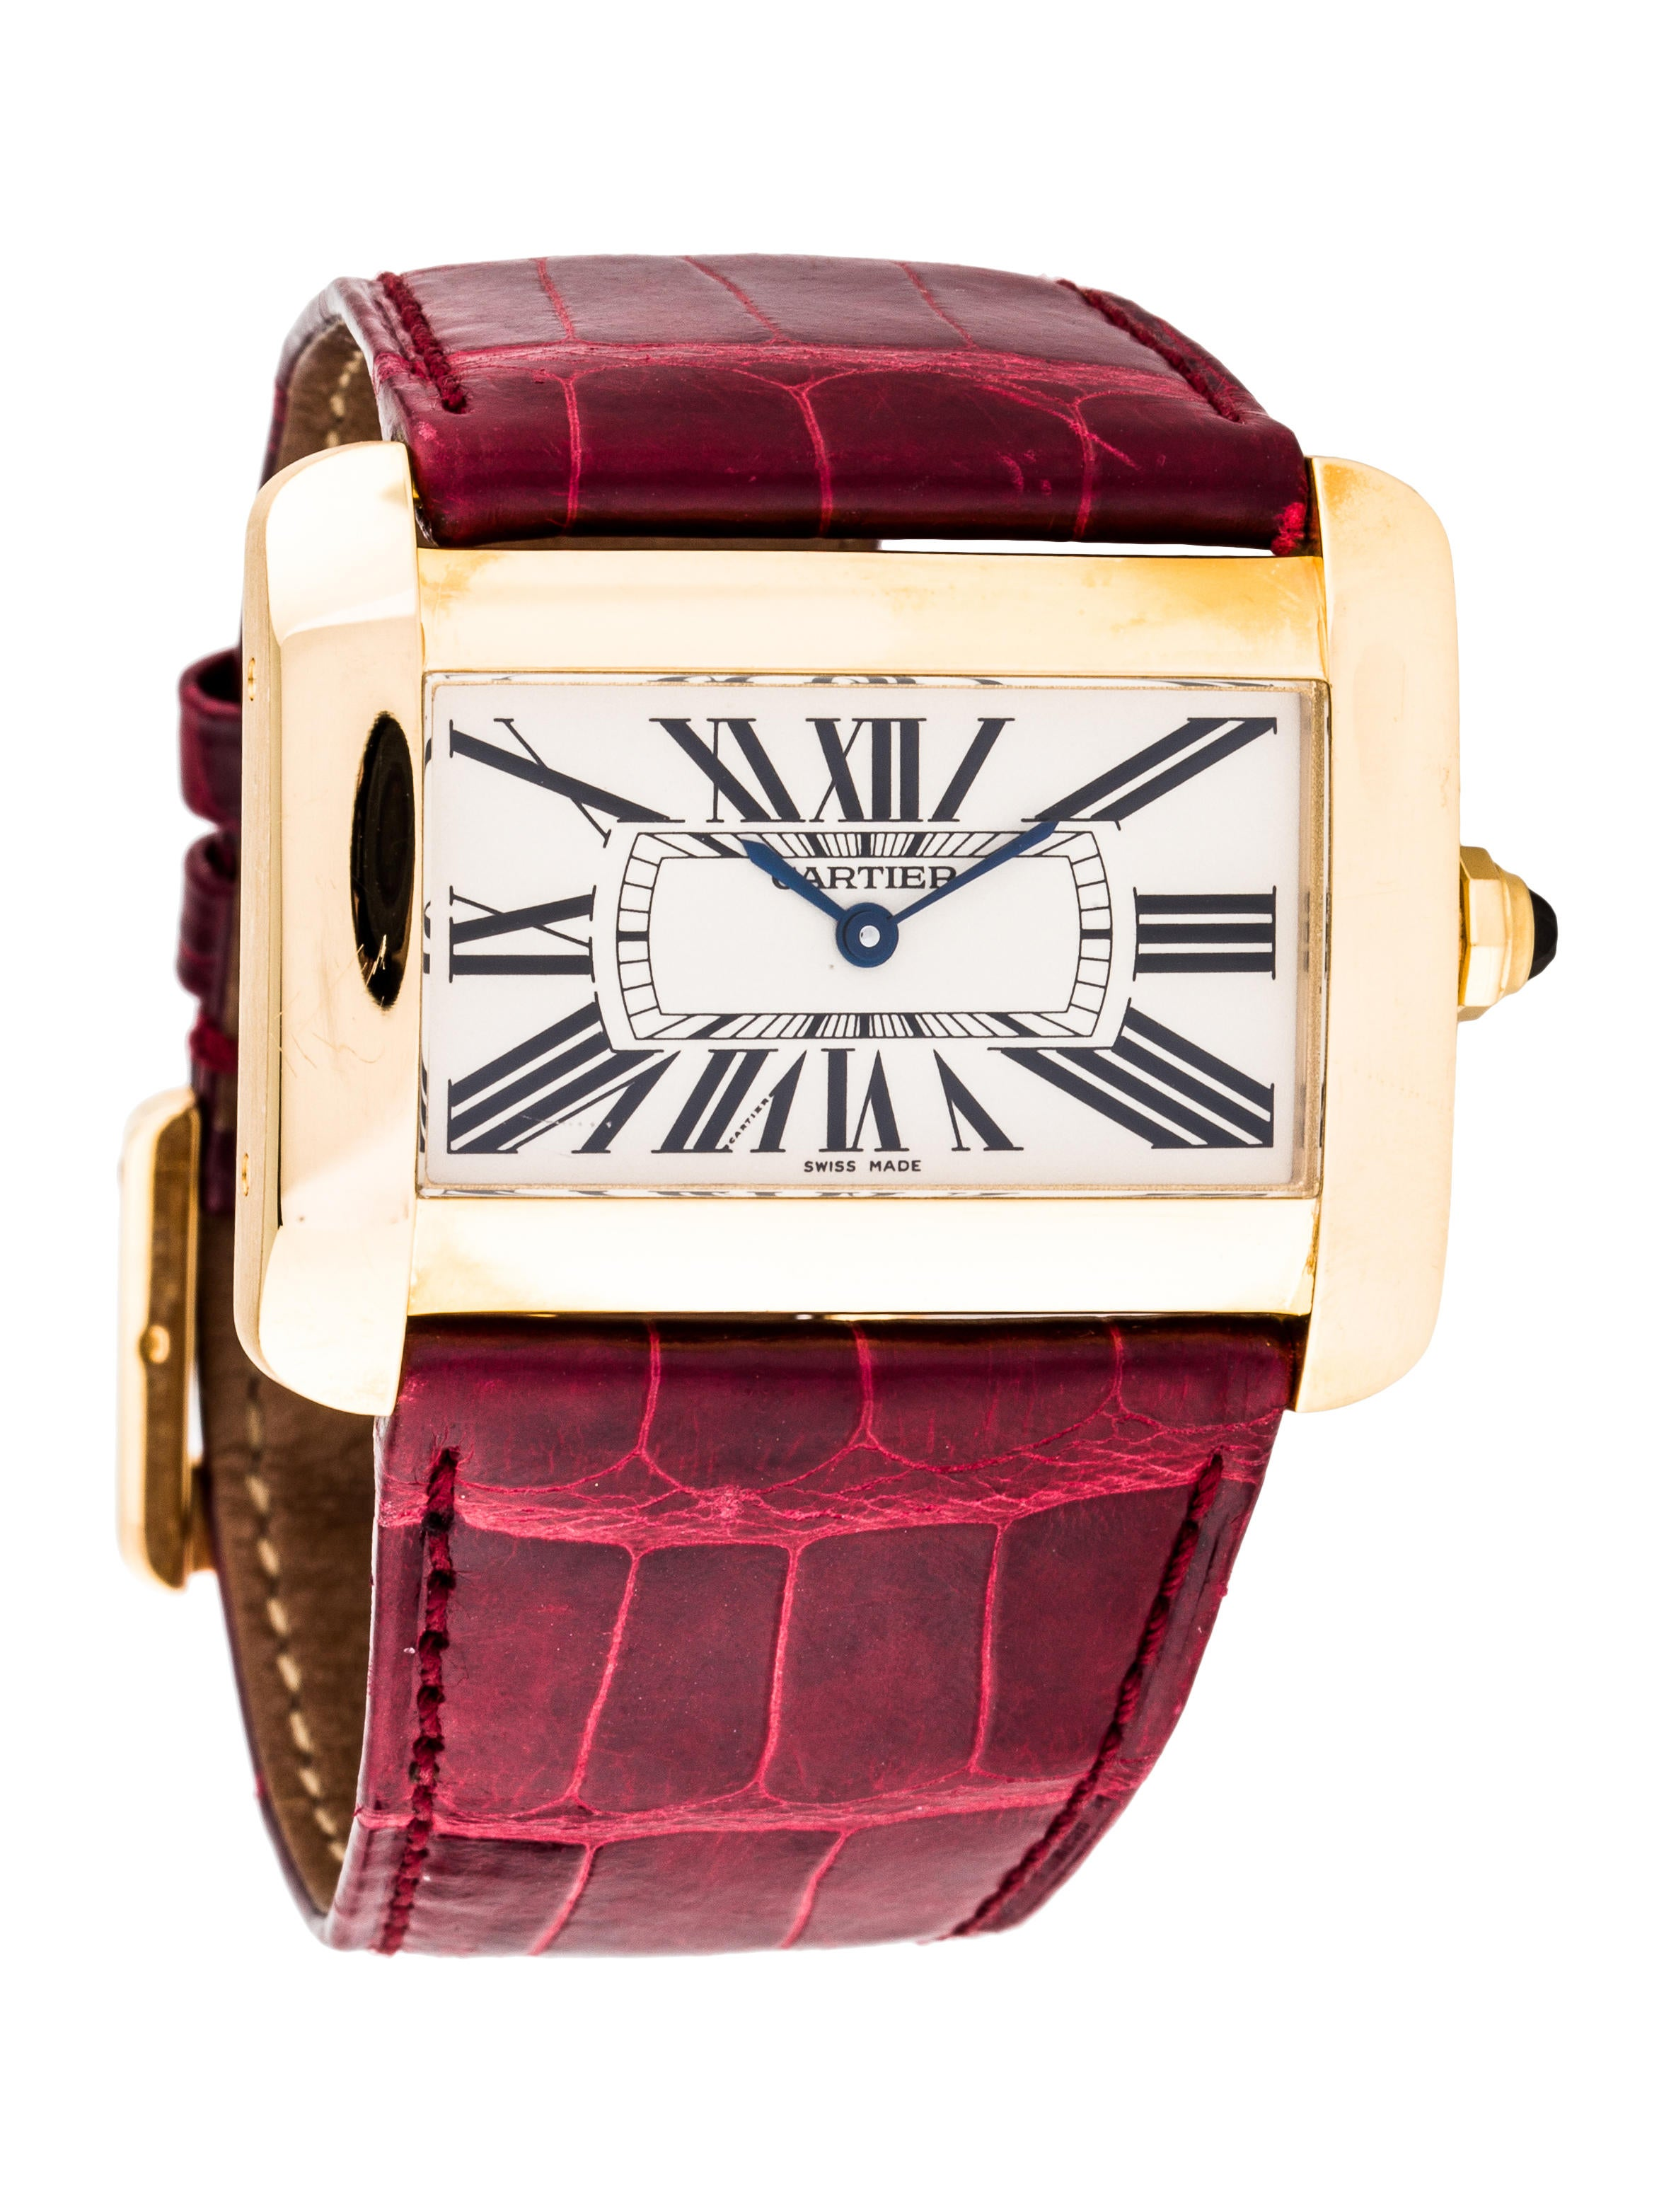 Cartier tank divan watch strap crt35447 the realreal for Cartier divan xl